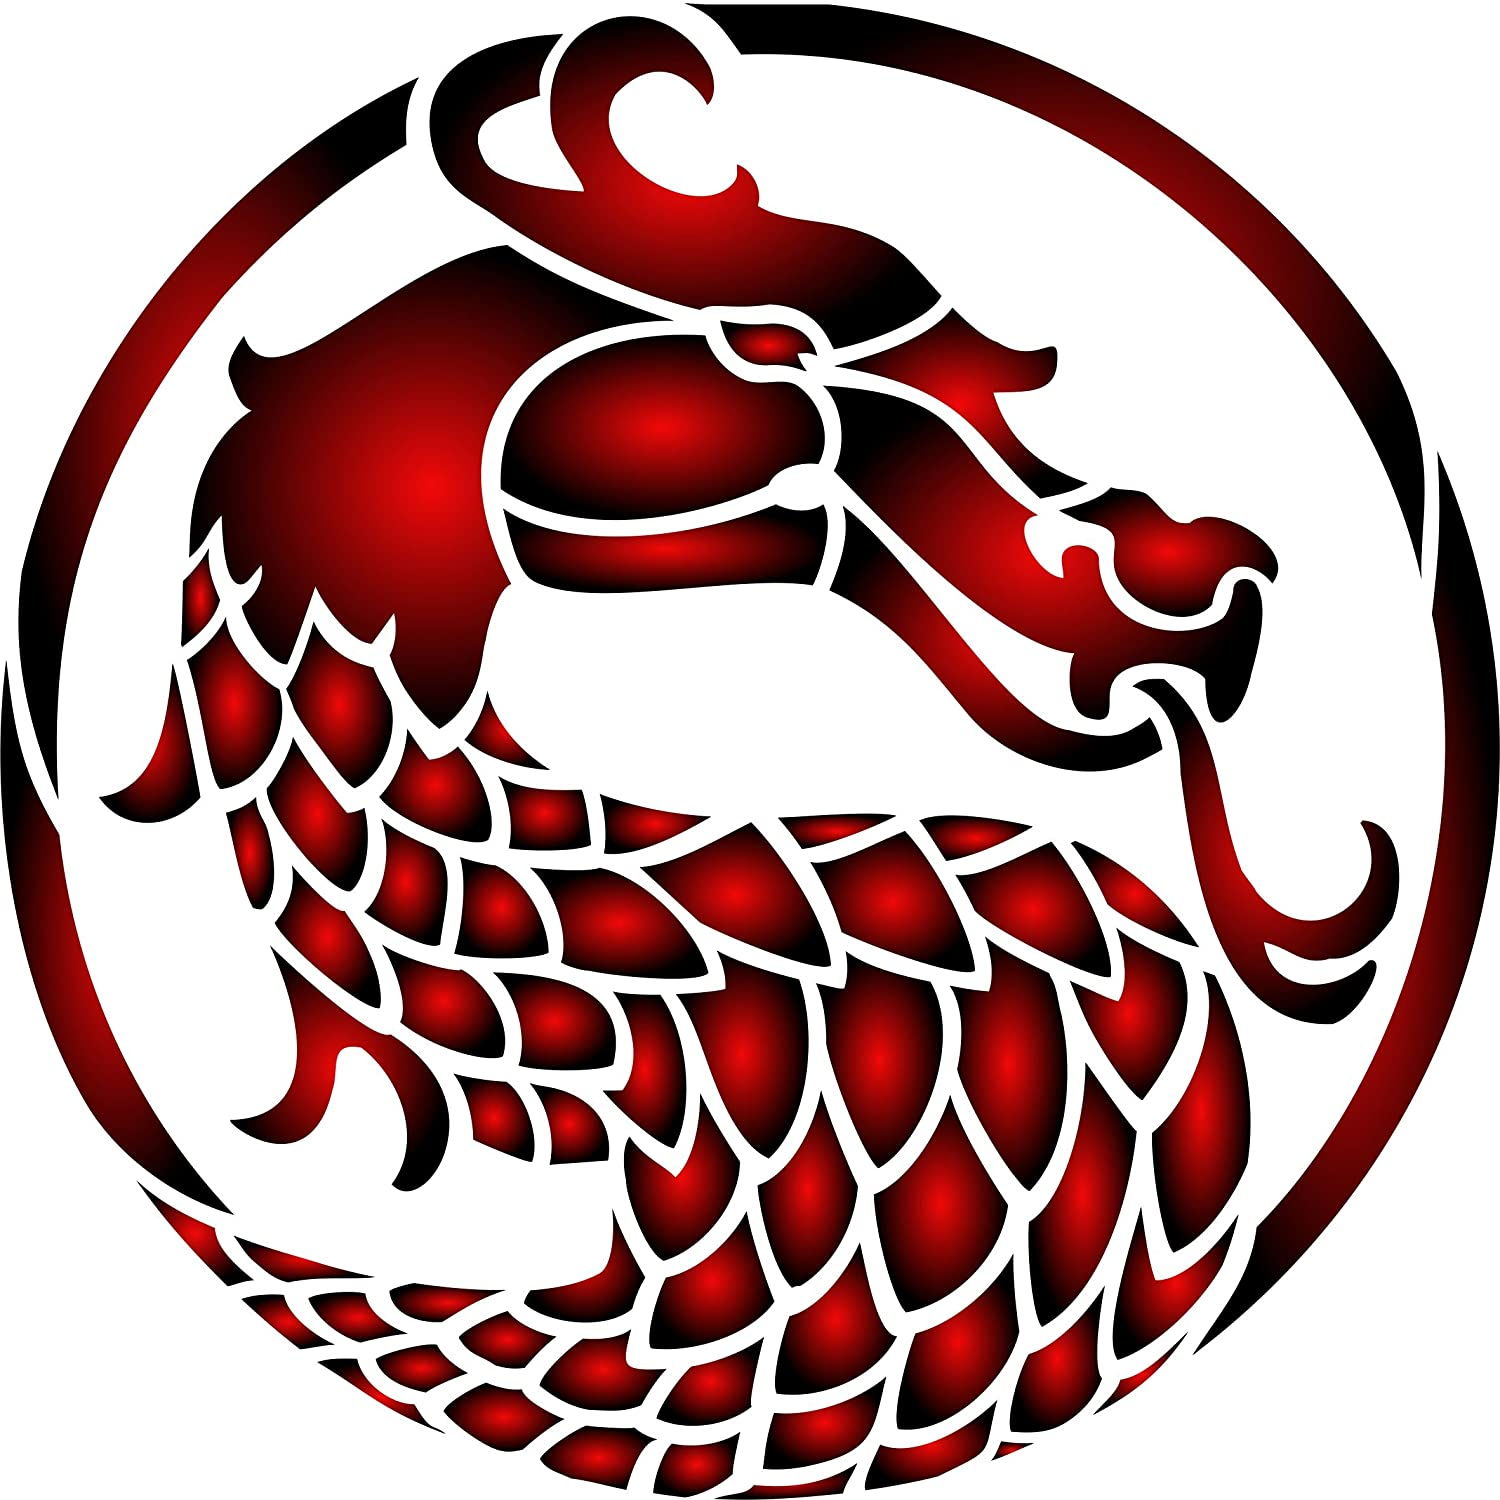 Amazon stencils for walls dragons head stencil size 325 amazon stencils for walls dragons head stencil size 325w x 325h reusable oriental asian dragon stencils for painting use on walls floors amipublicfo Gallery